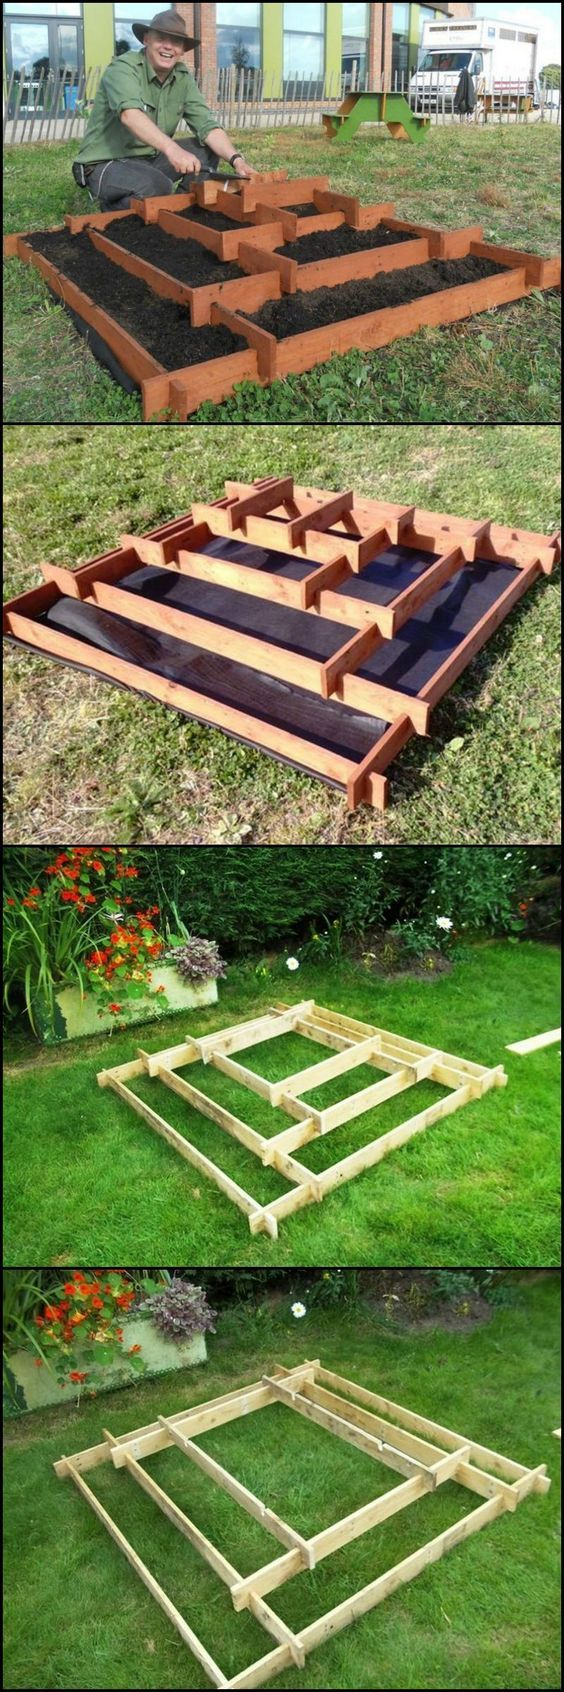 #woodworkingplans #woodworking #woodworkingprojects How To Make A Slot Together Pyramid Planter theownerbuilderne... Pyramid planters are great for growing various plants especially if you don't have a lot of space in your garden or yard. It's very easy and cheap to make as it's made from recycled pallet timbers. All you need is an hour and a half and some basic woodworking skills.